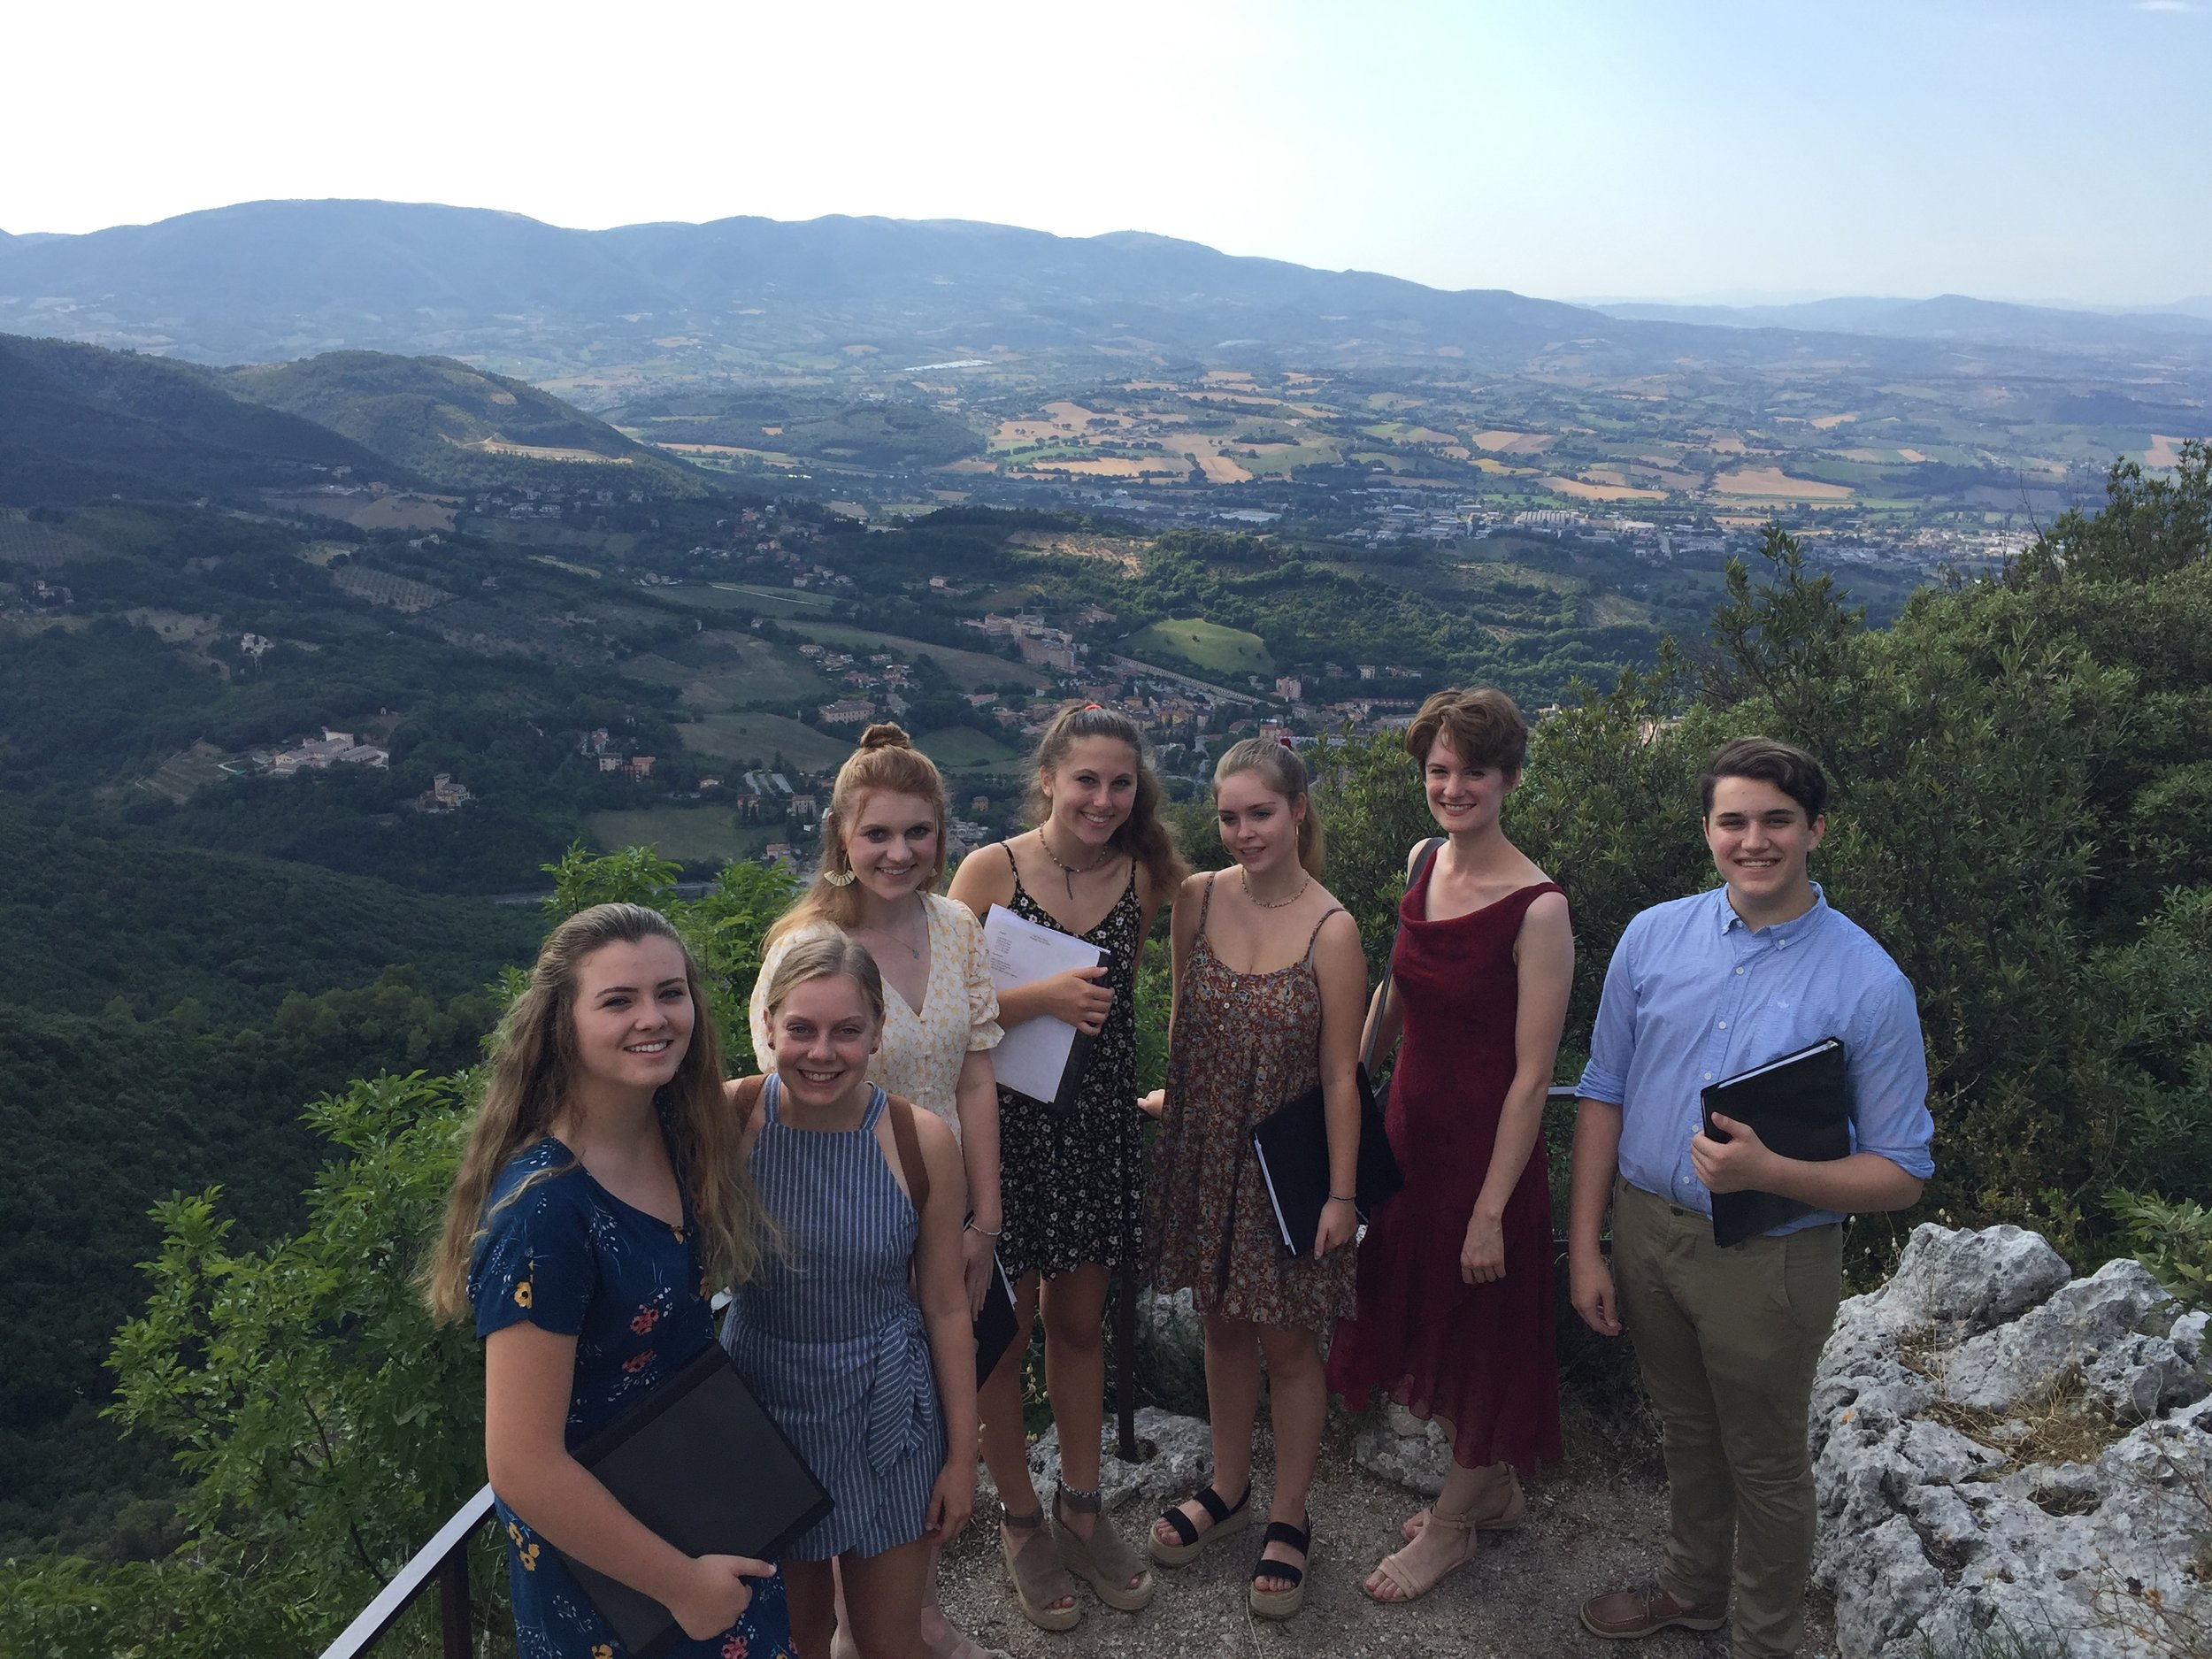 """Our Spoleto Study Abroad music students enjoying the view from Monteluco before an evening concert for a very appreciative crowd, where the choir sang """"Va, pensiero"""" from Verdi's opera  Nabucco."""